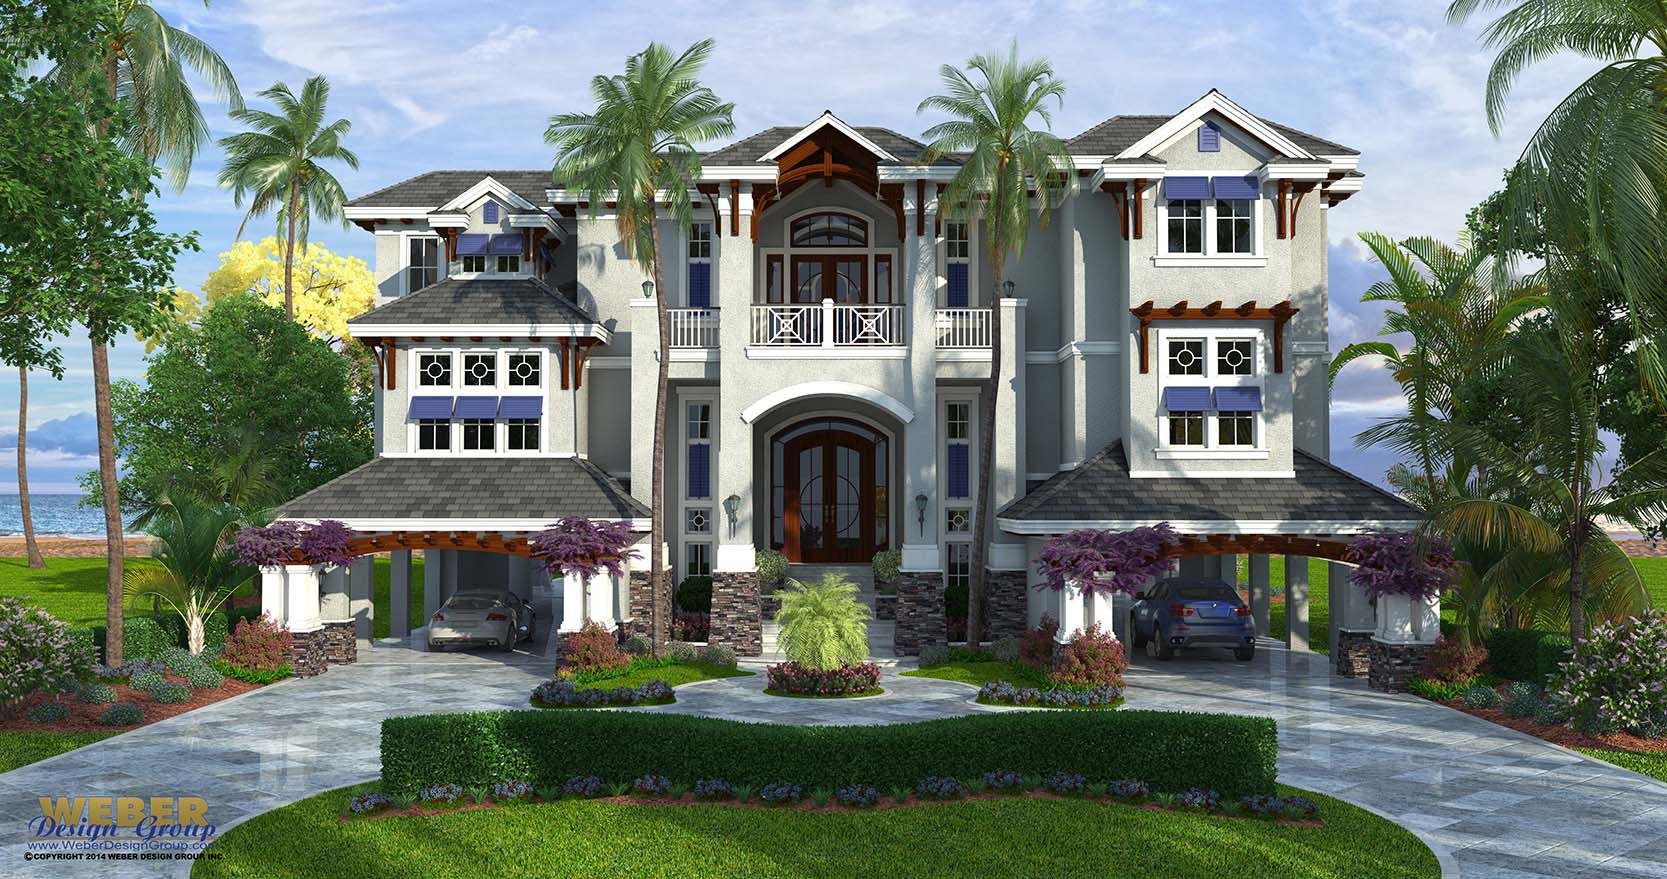 Coastal style house plan 3 story floor plan outdoor for Coastal style house plans